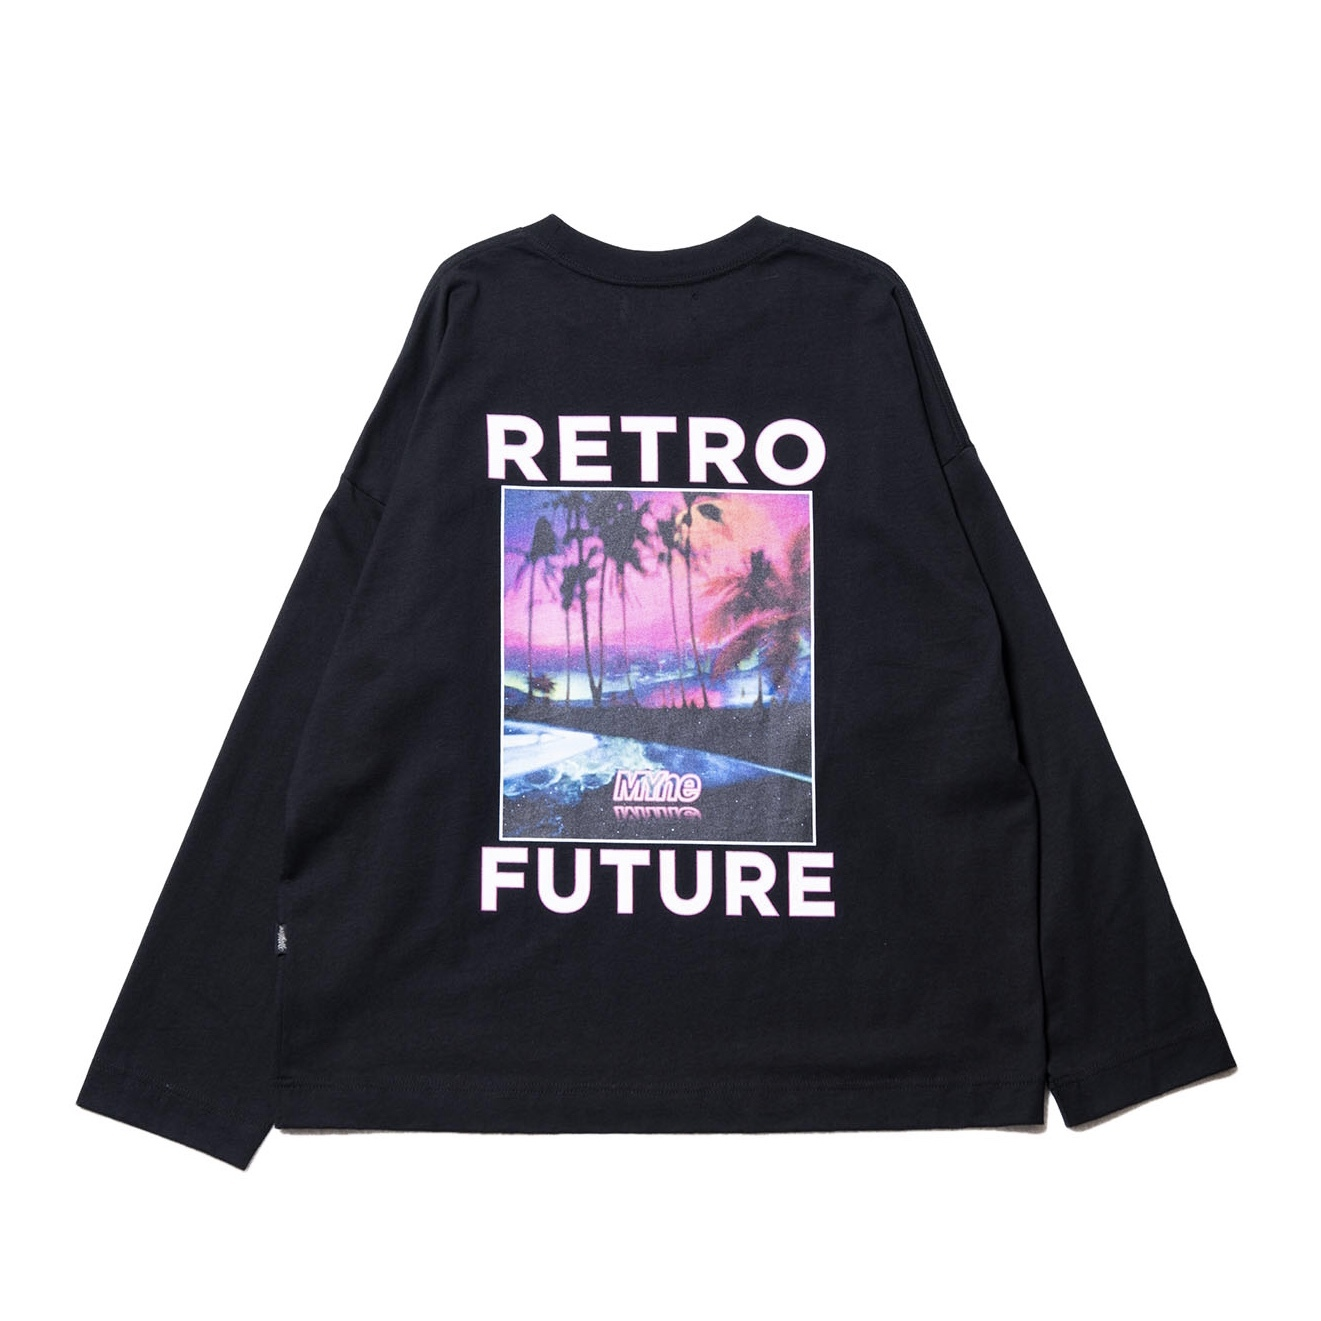 RETRO FUTURE L/S T-shirt / BLACK - 画像2